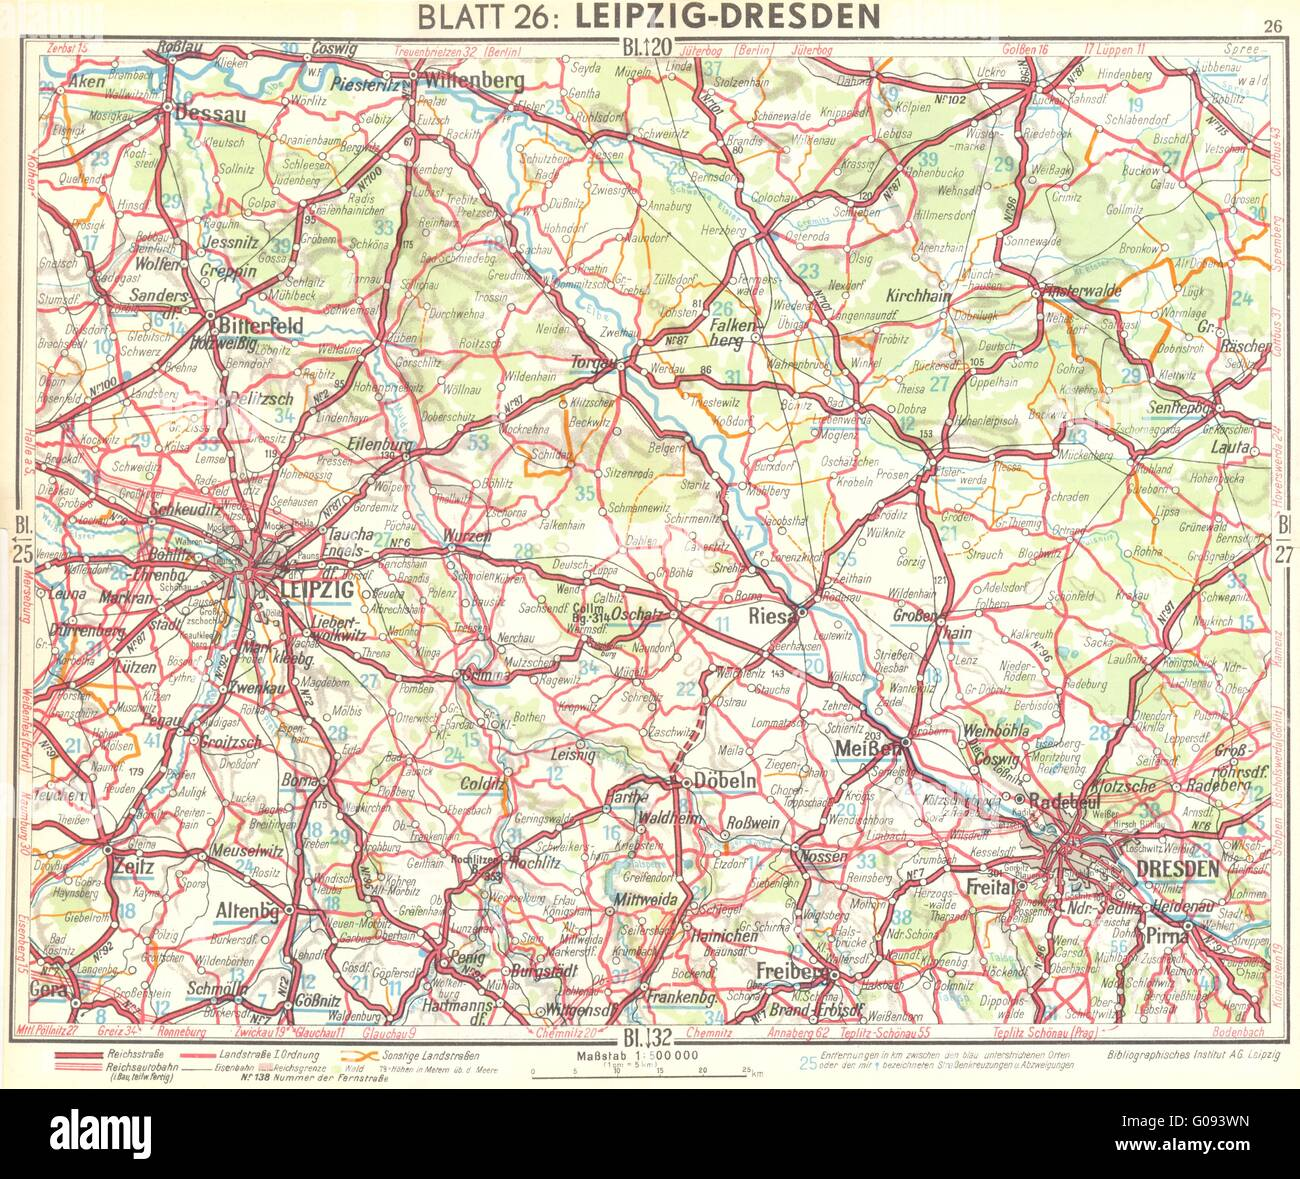 Germany Leipzig Dresden 1936 Vintage Map Stock Photo 103462849